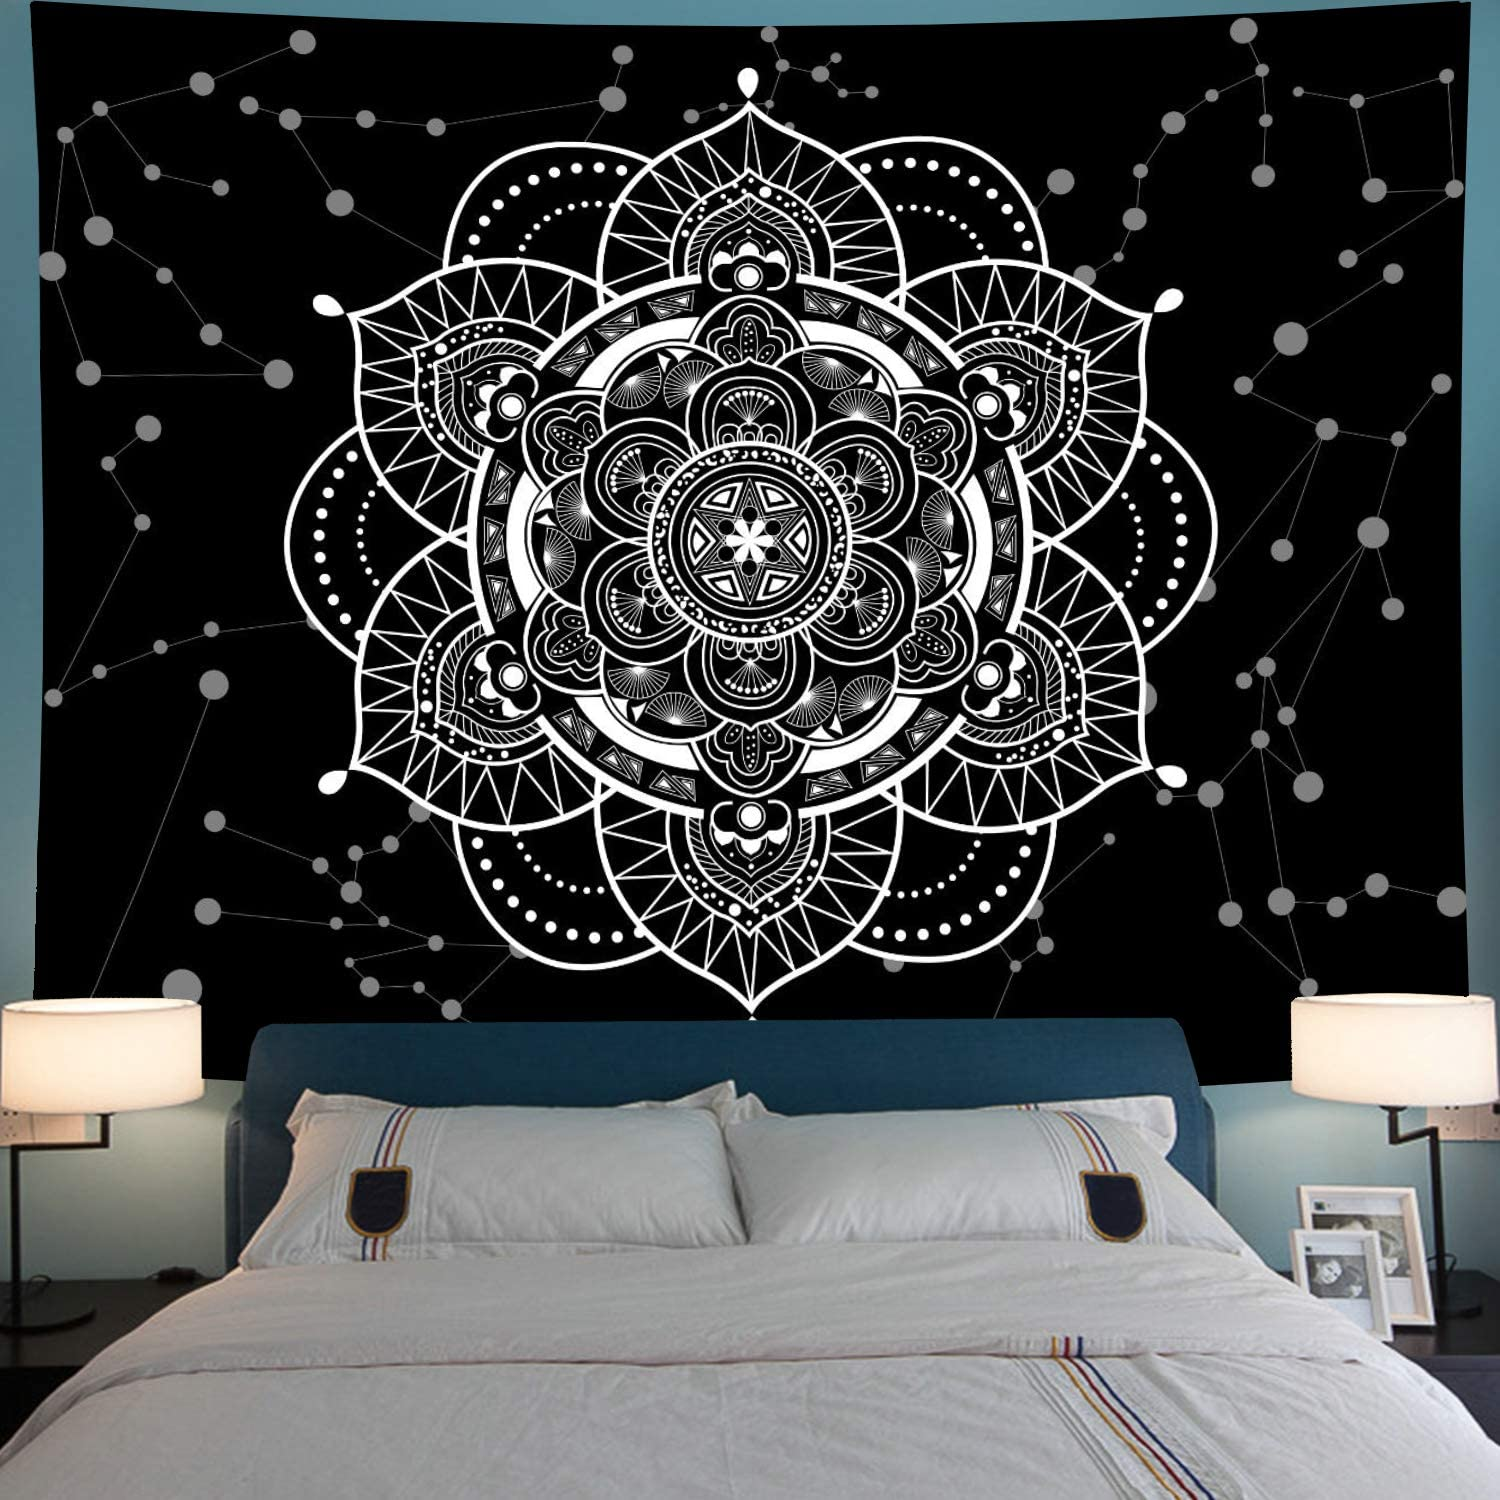 Leofanger Mandala Tapestry Blue Starry Mandala Wall Tapestry Galaxy Constellation Tapestry Wall Hanging Psychedelic Bohemian Indian Hippie Tapestry for Bedroom Decor